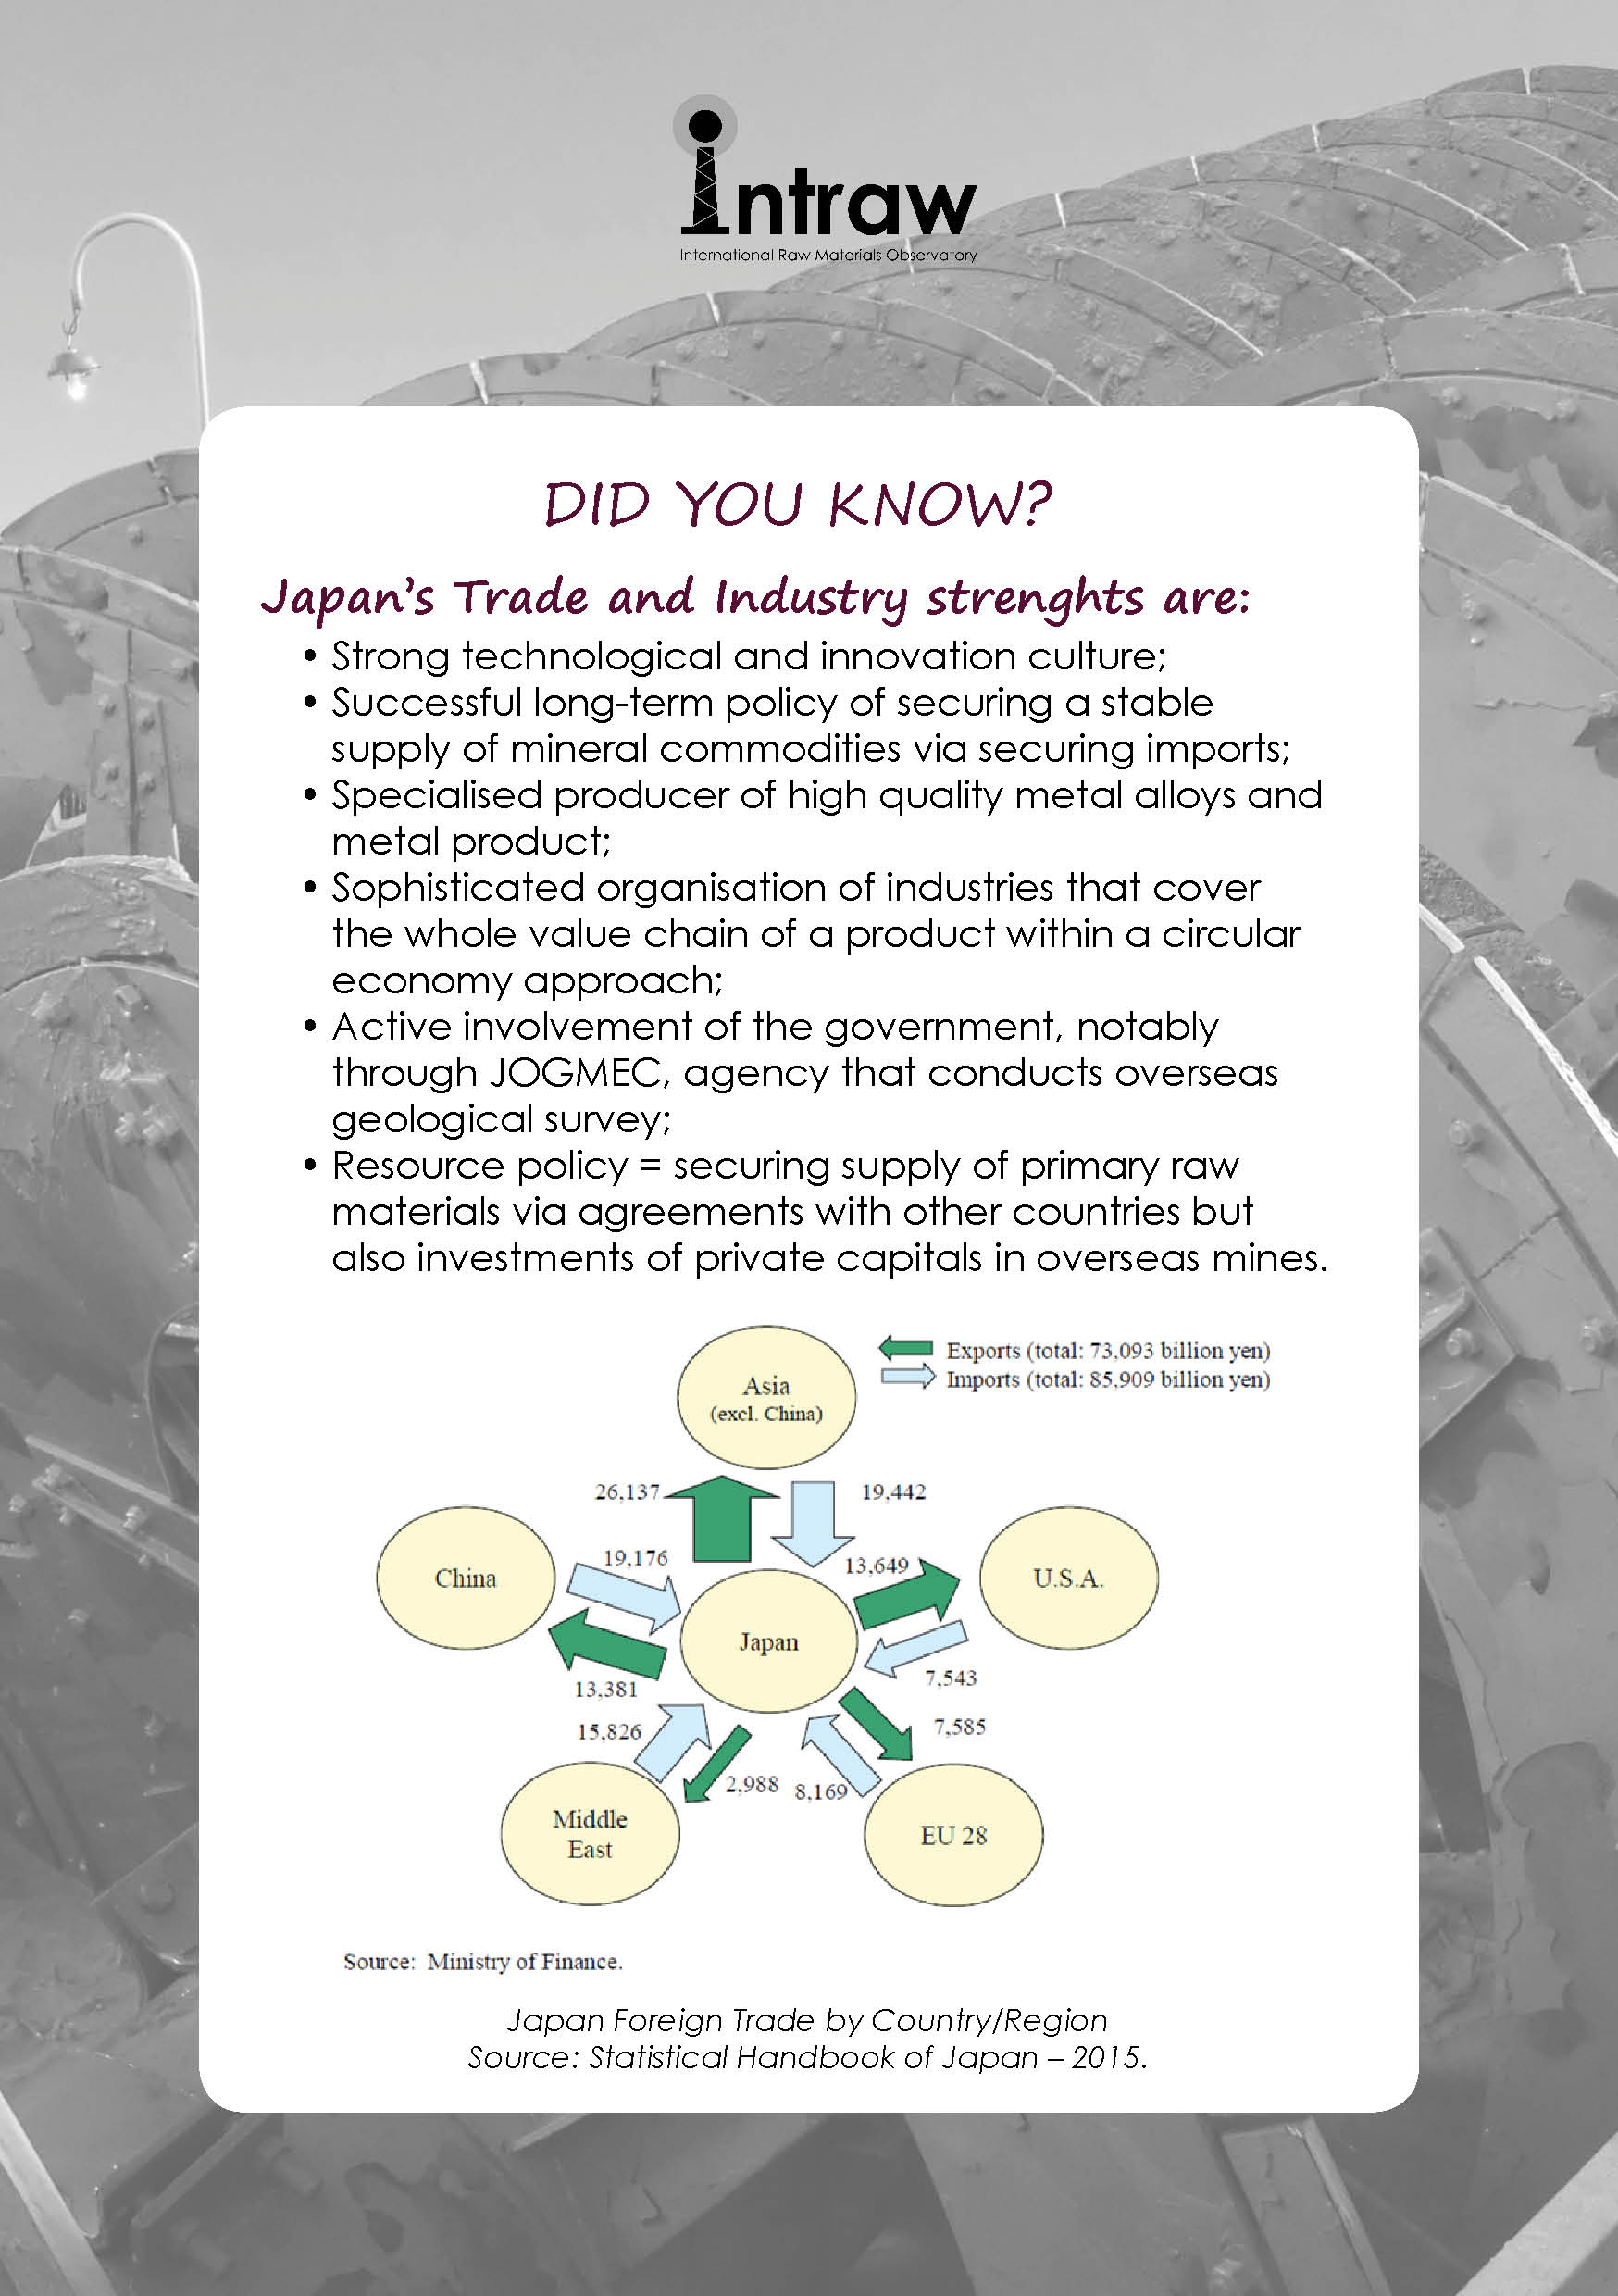 Check how Japan is doing with #TradeAndIndustry, first with a look at its strengths